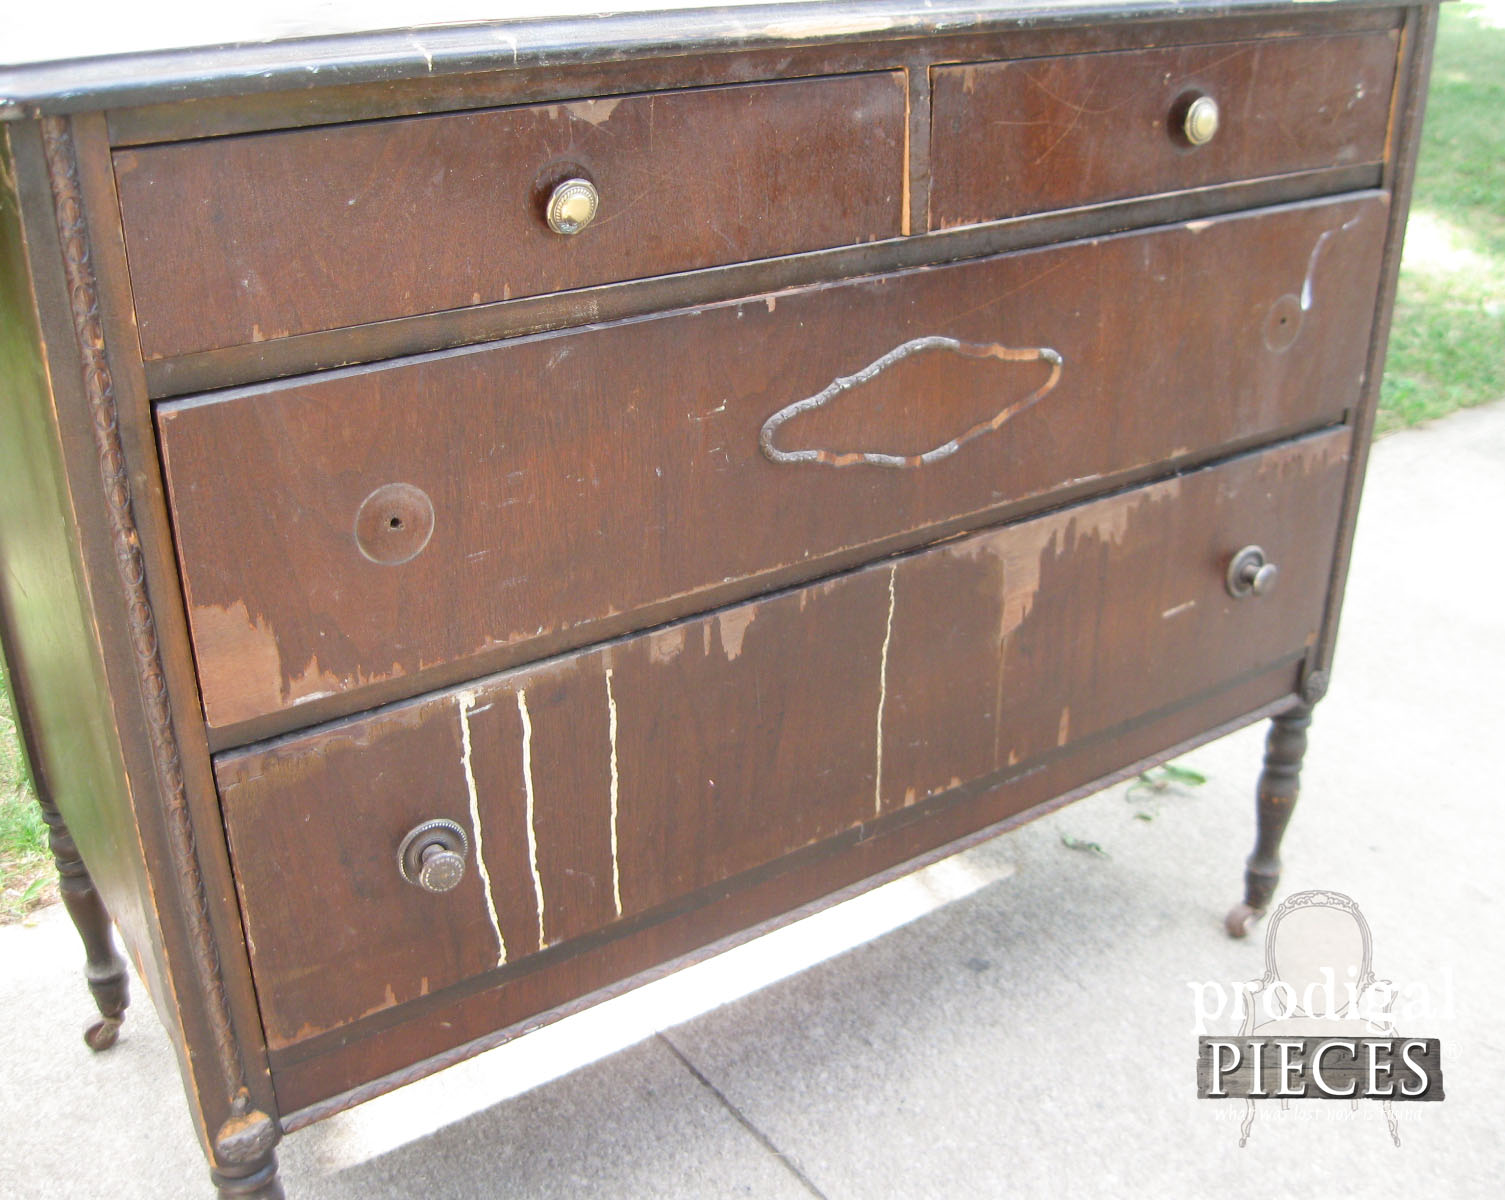 Dresser Face With Veneer Damage And Missing Parts | Prodigal Pieces |  Www.prodigalpieces.